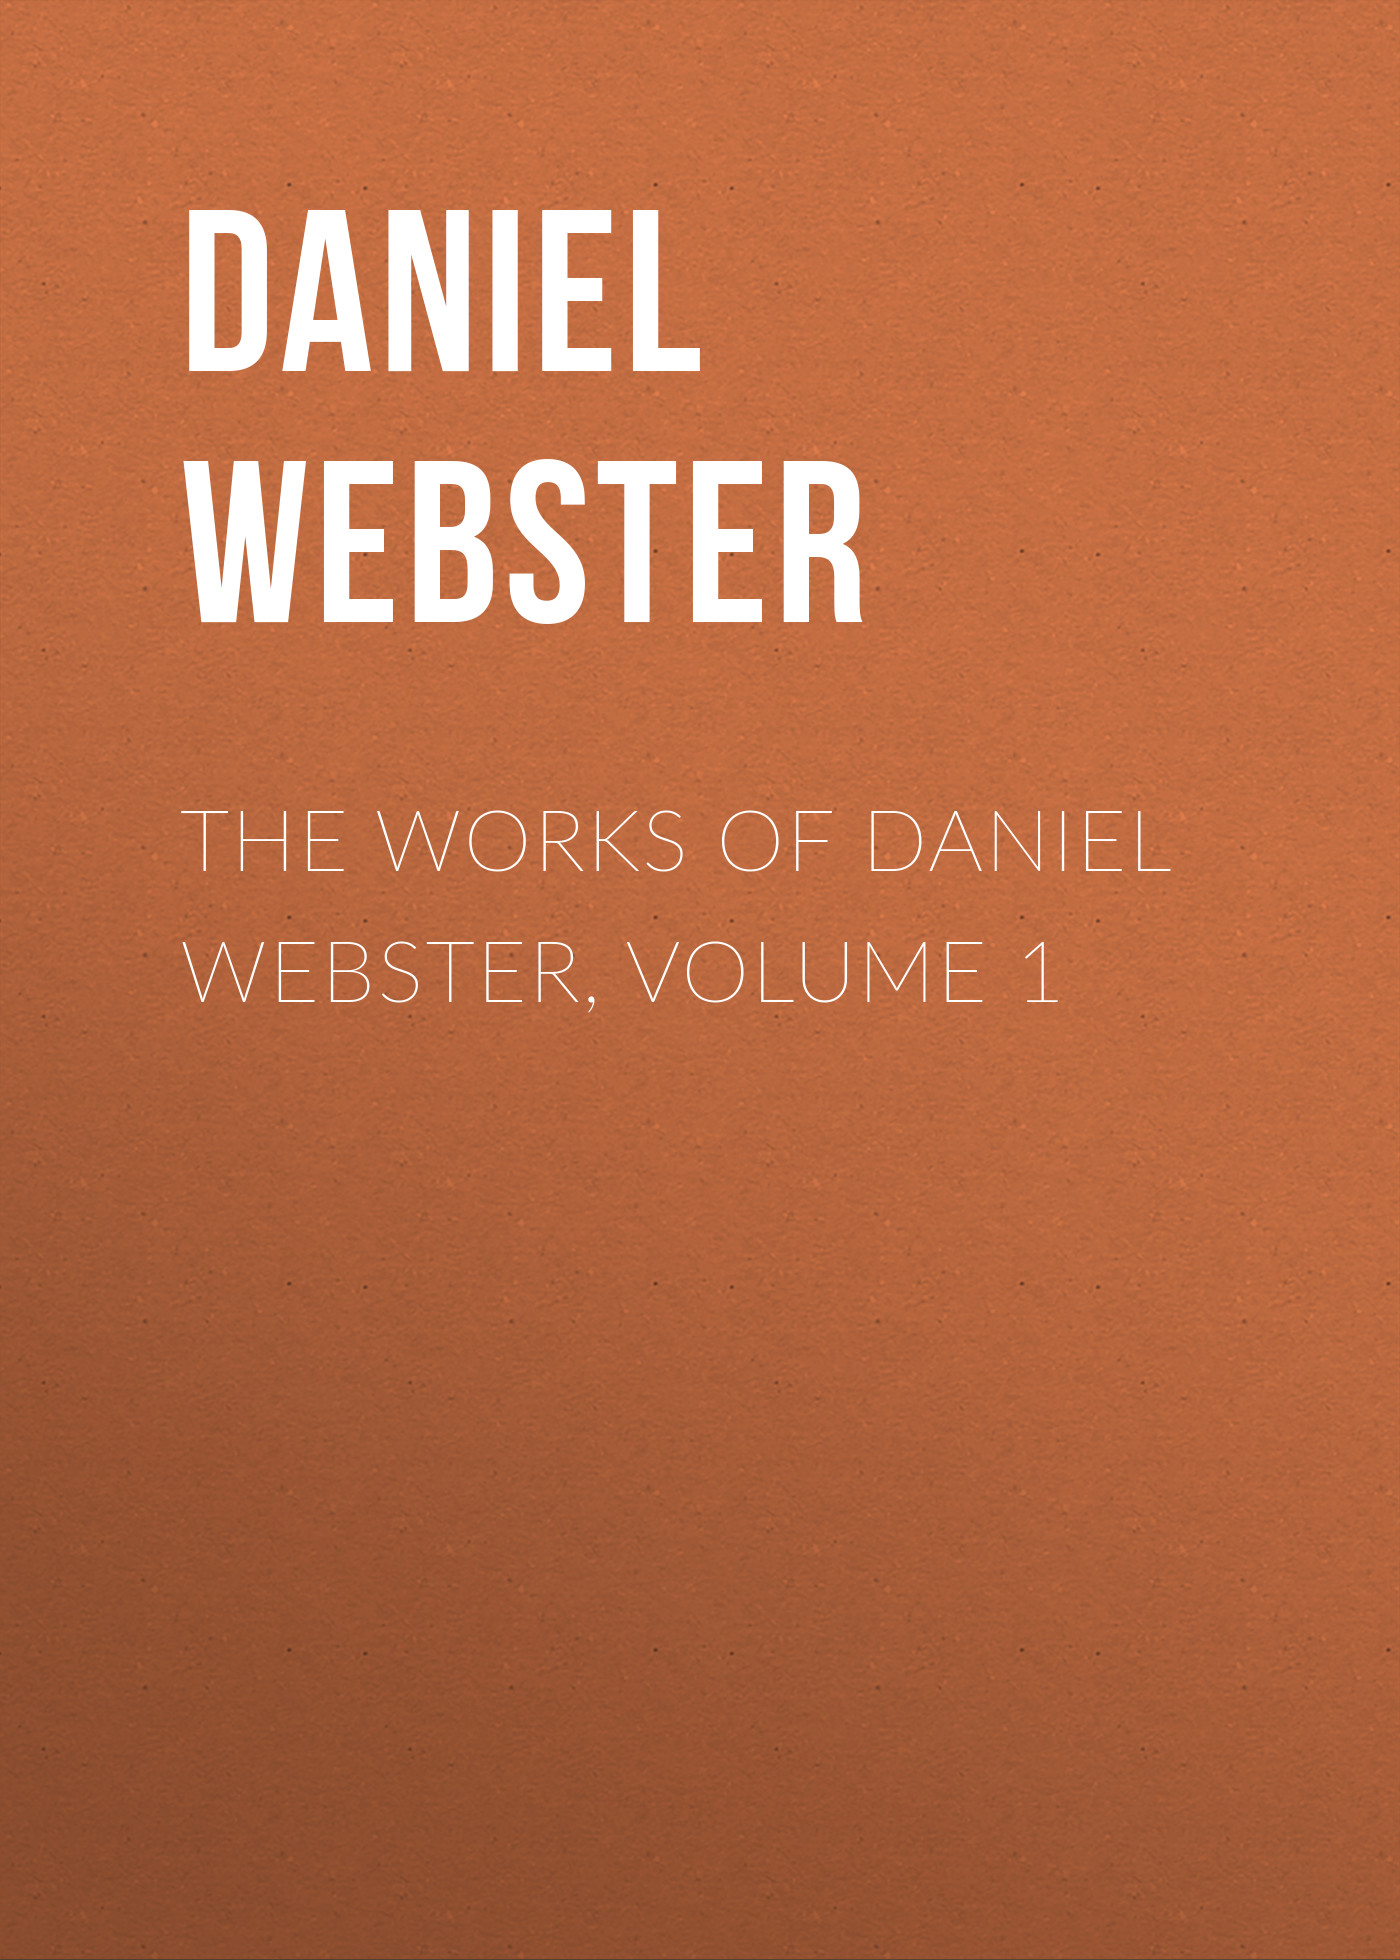 Daniel Webster The Works of Daniel Webster, Volume 1 webster s new worldtm portable large print dictionary